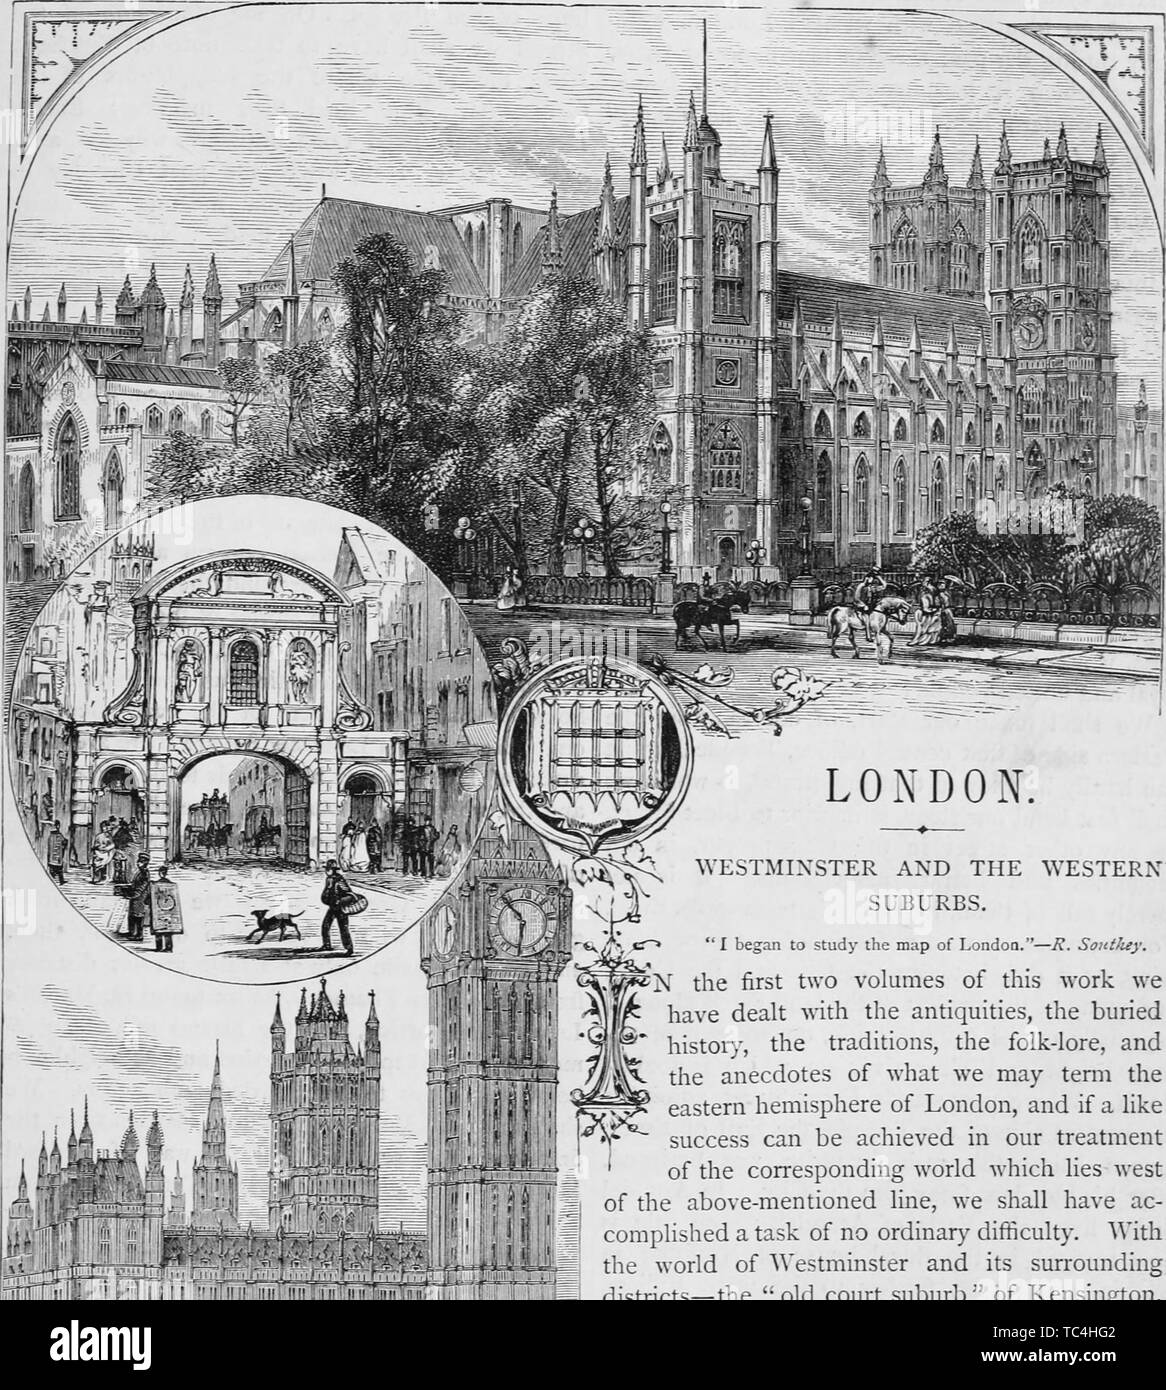 Engravings of the Westminster Abbey and Houses of Parliament in London, England, from the book 'Old and new London: a narrative of its history, its people, and its places' by Thornbury Walter, 1508. Courtesy Internet Archive. () - Stock Image